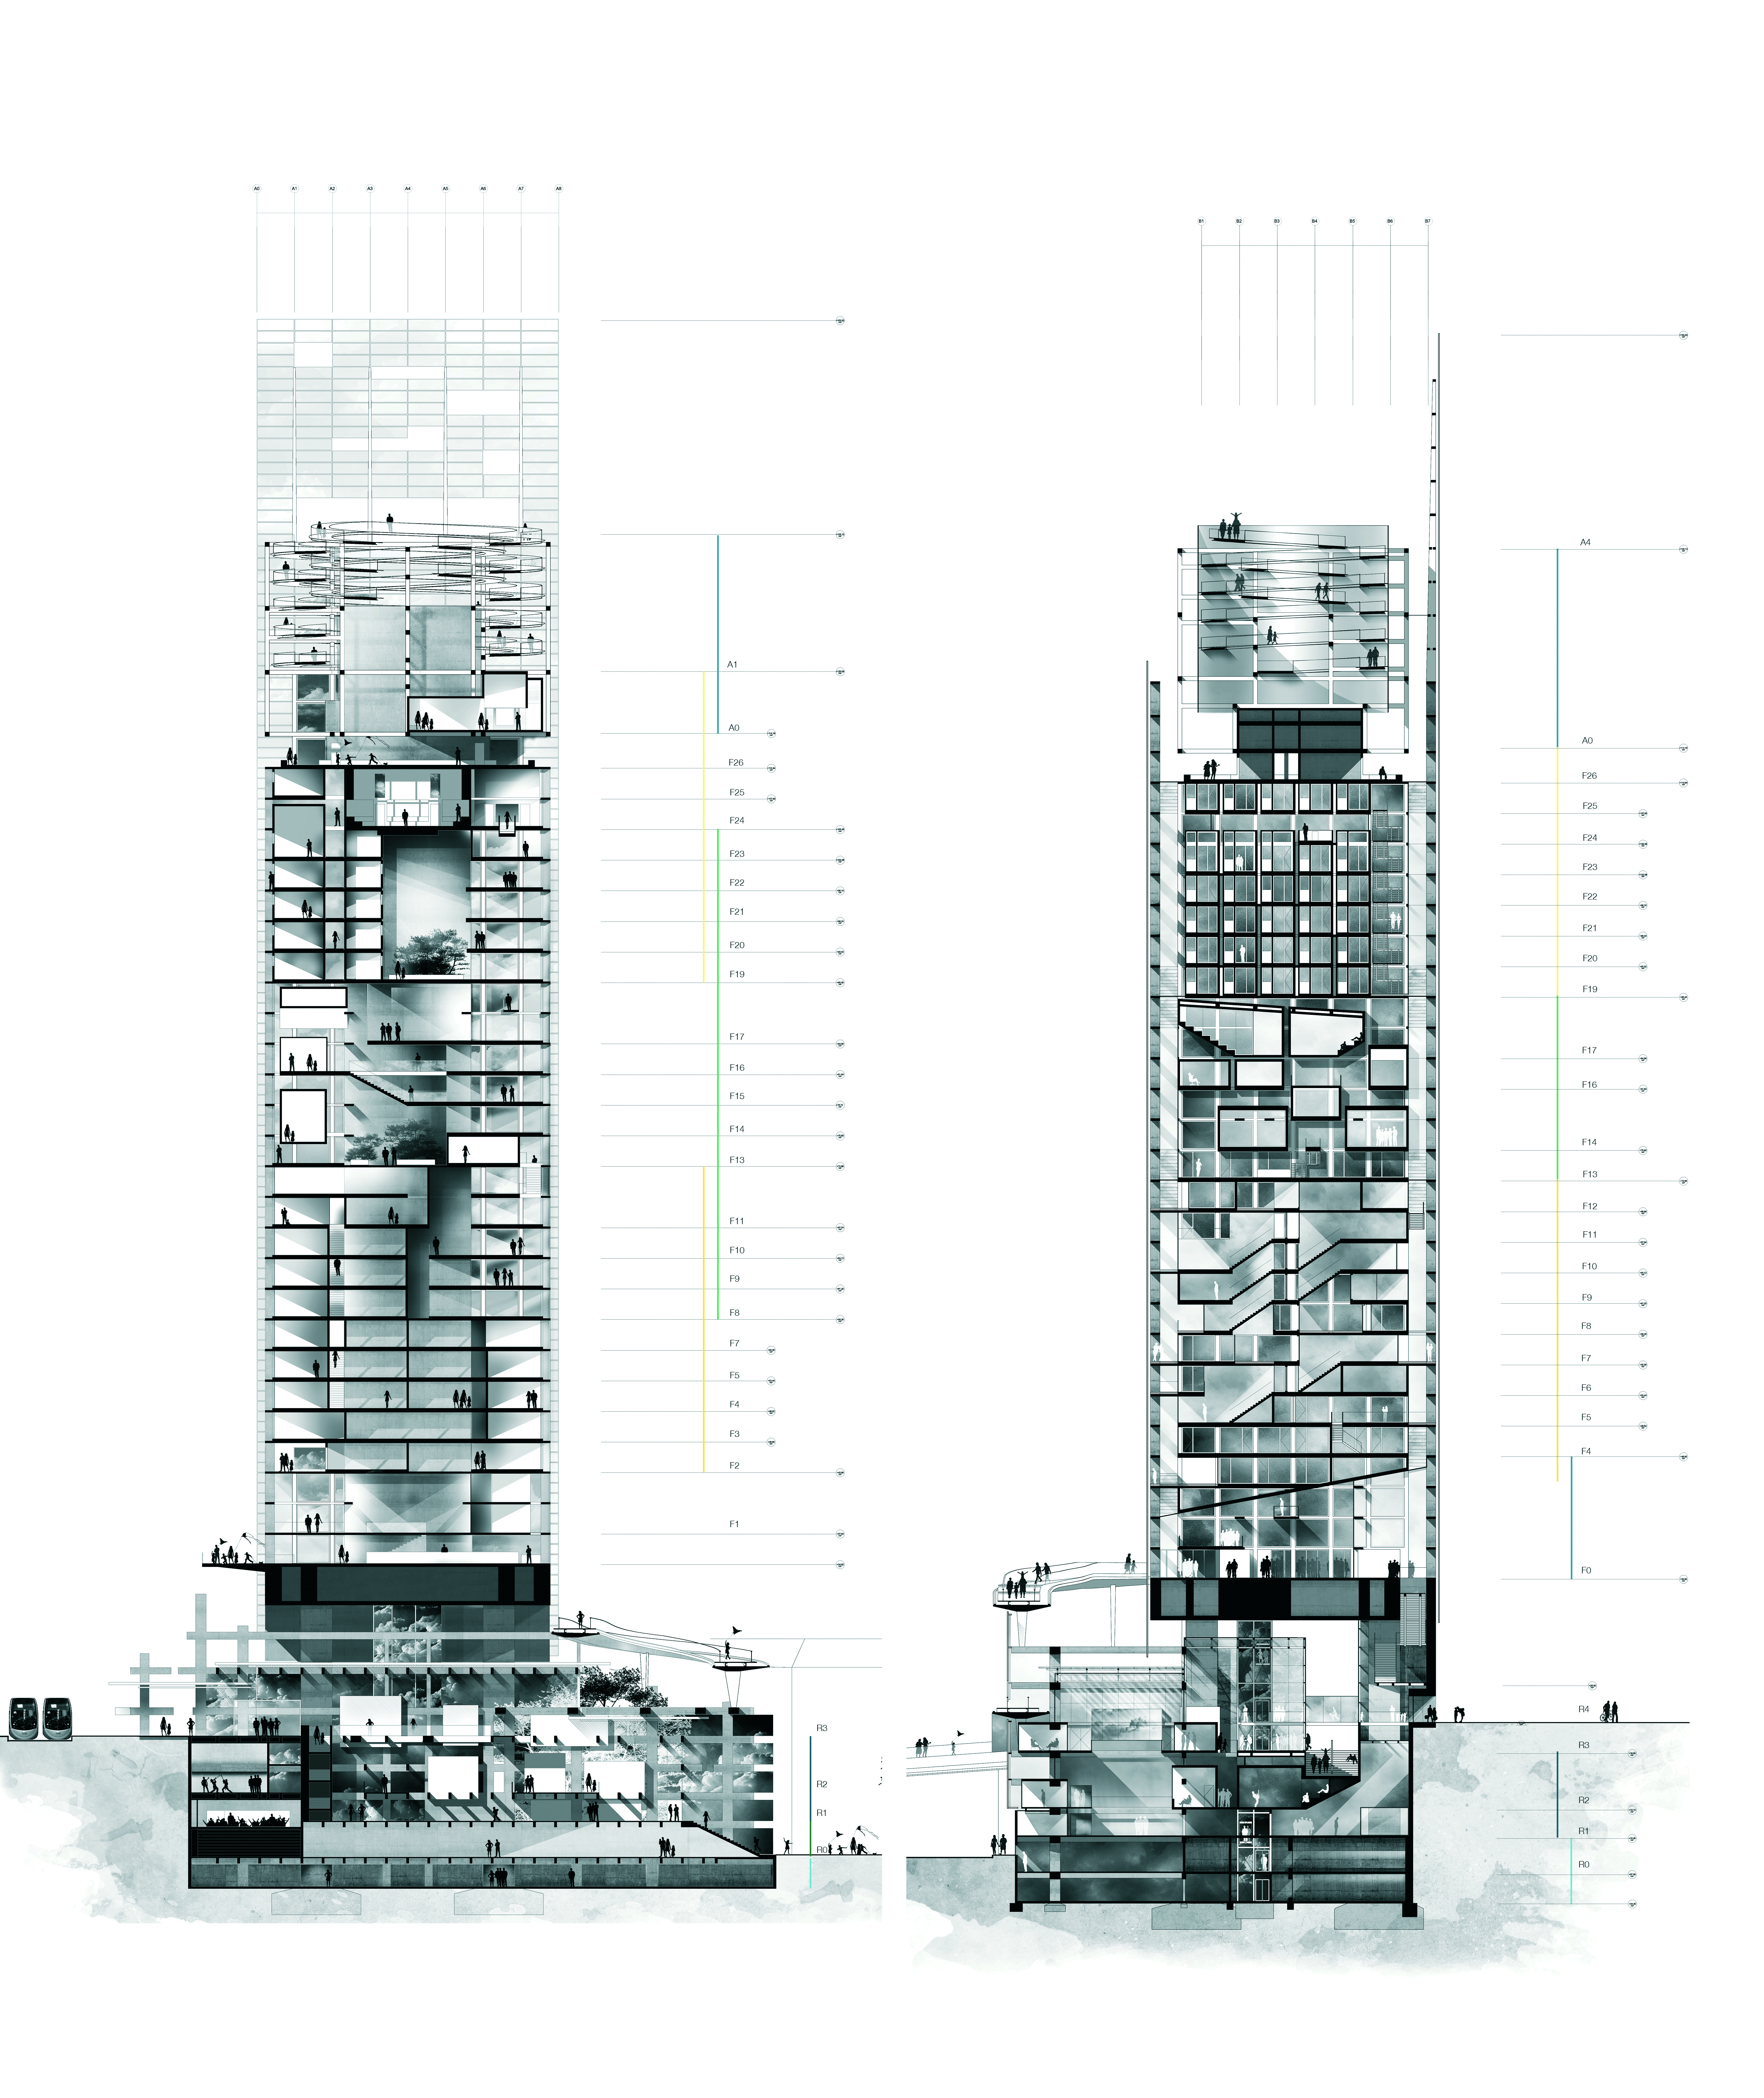 Vertical Restructuring: High-rise tower rehabilitation, Nantes